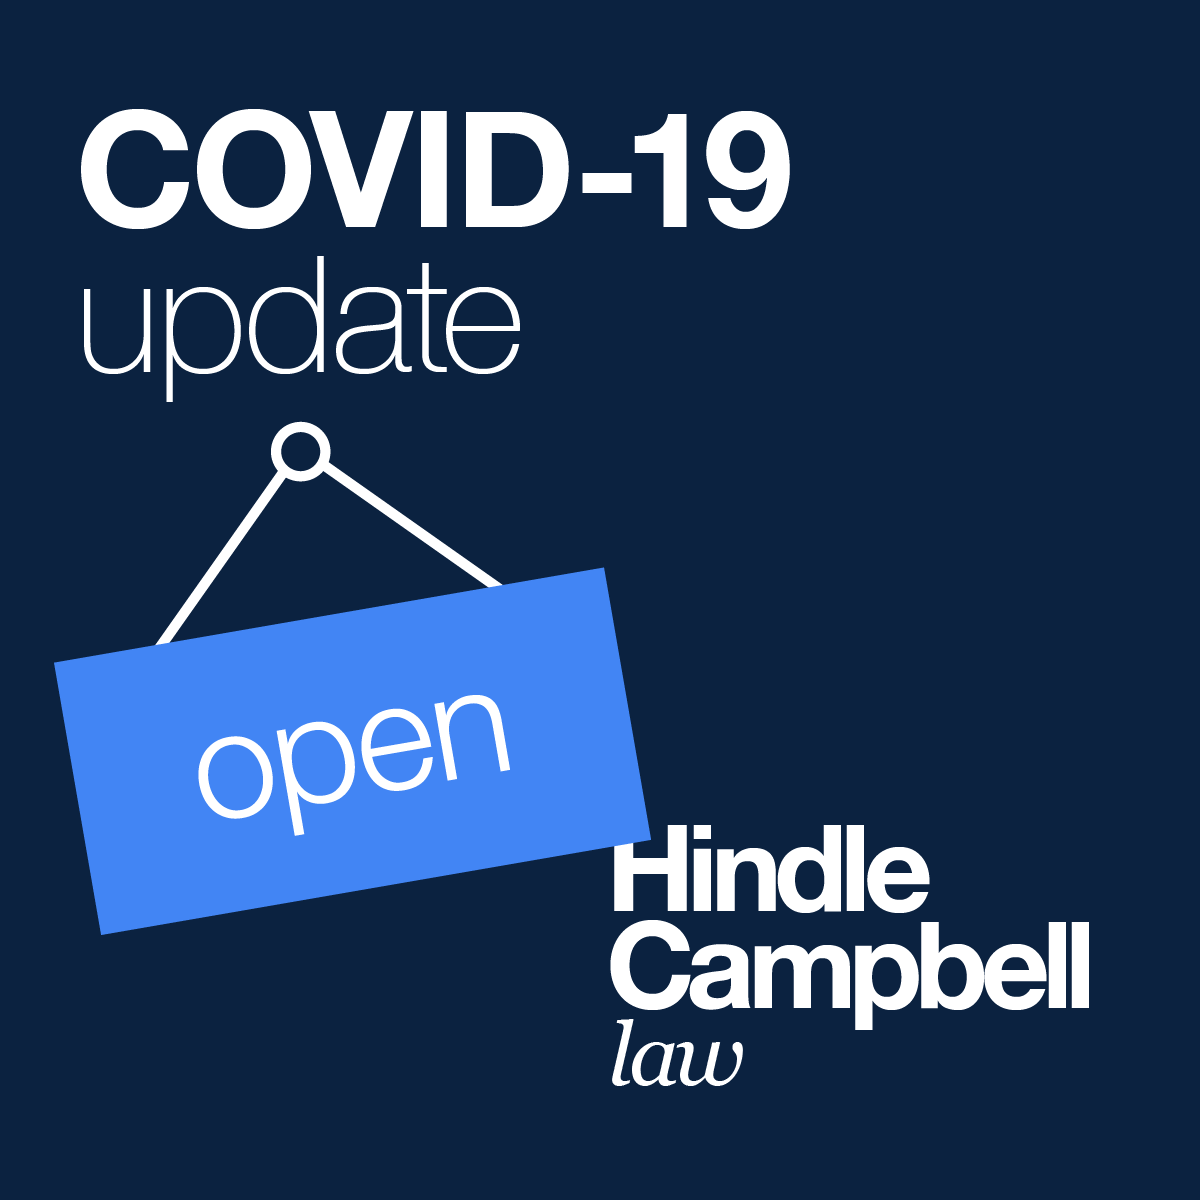 Solicitor North Shields Hindle Campbell - COVI19 Open Message